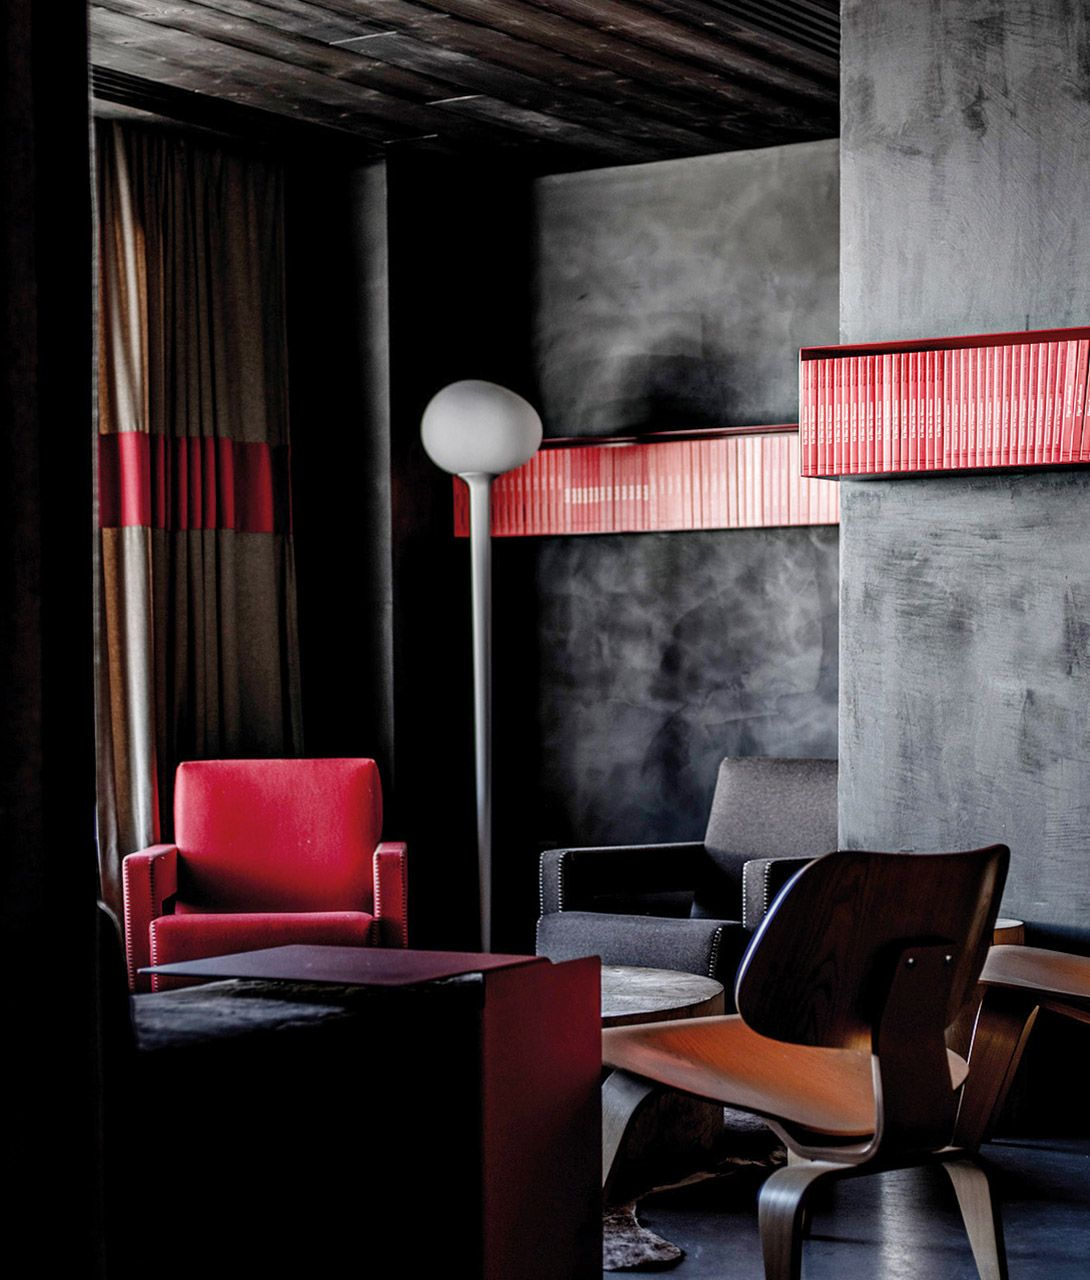 Hotel le Val Thorens Interior in France